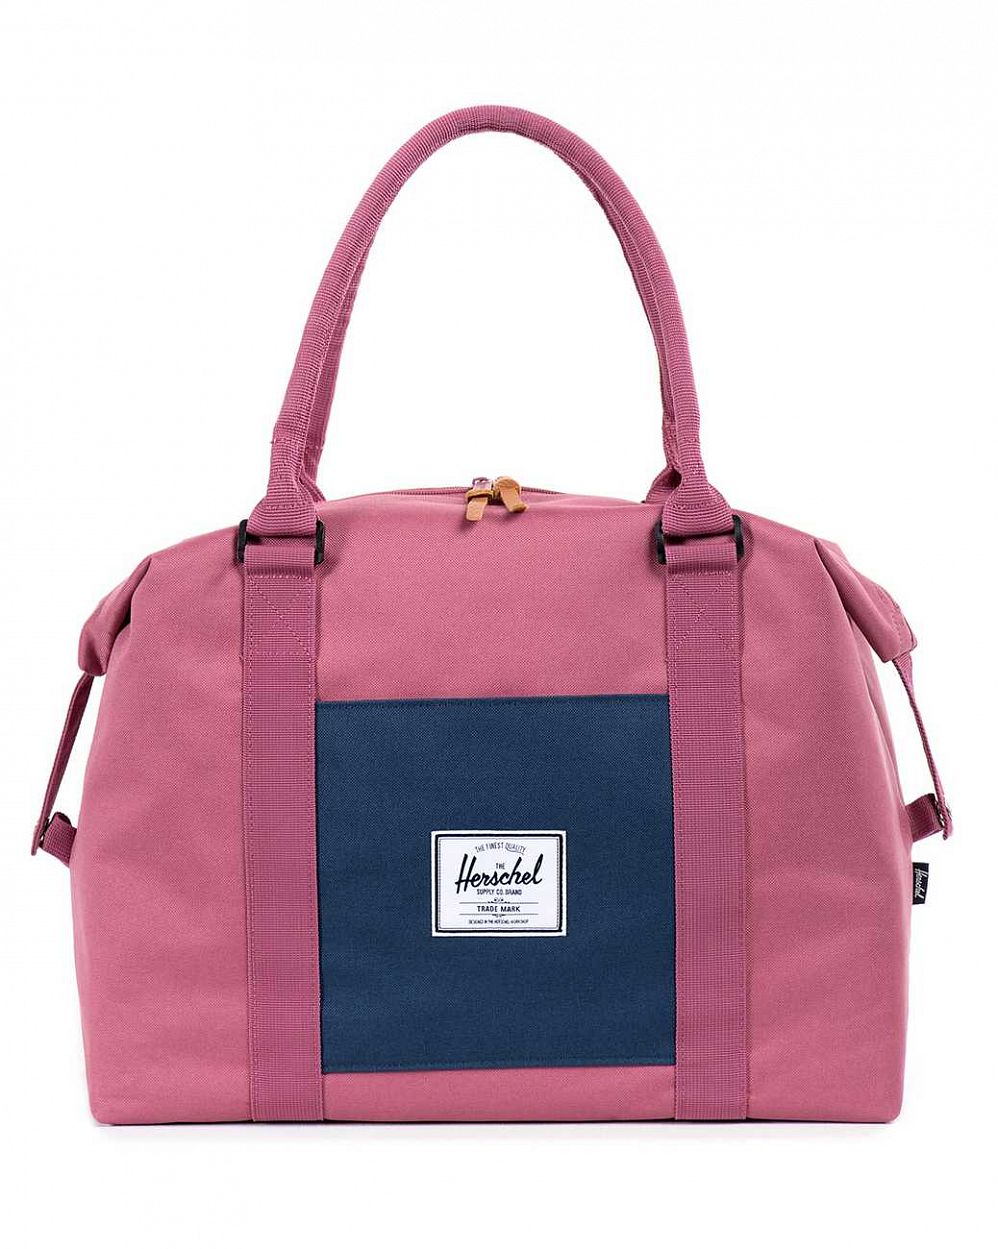 Сумка Herschel Strand Dusty Blush Navy отзывы